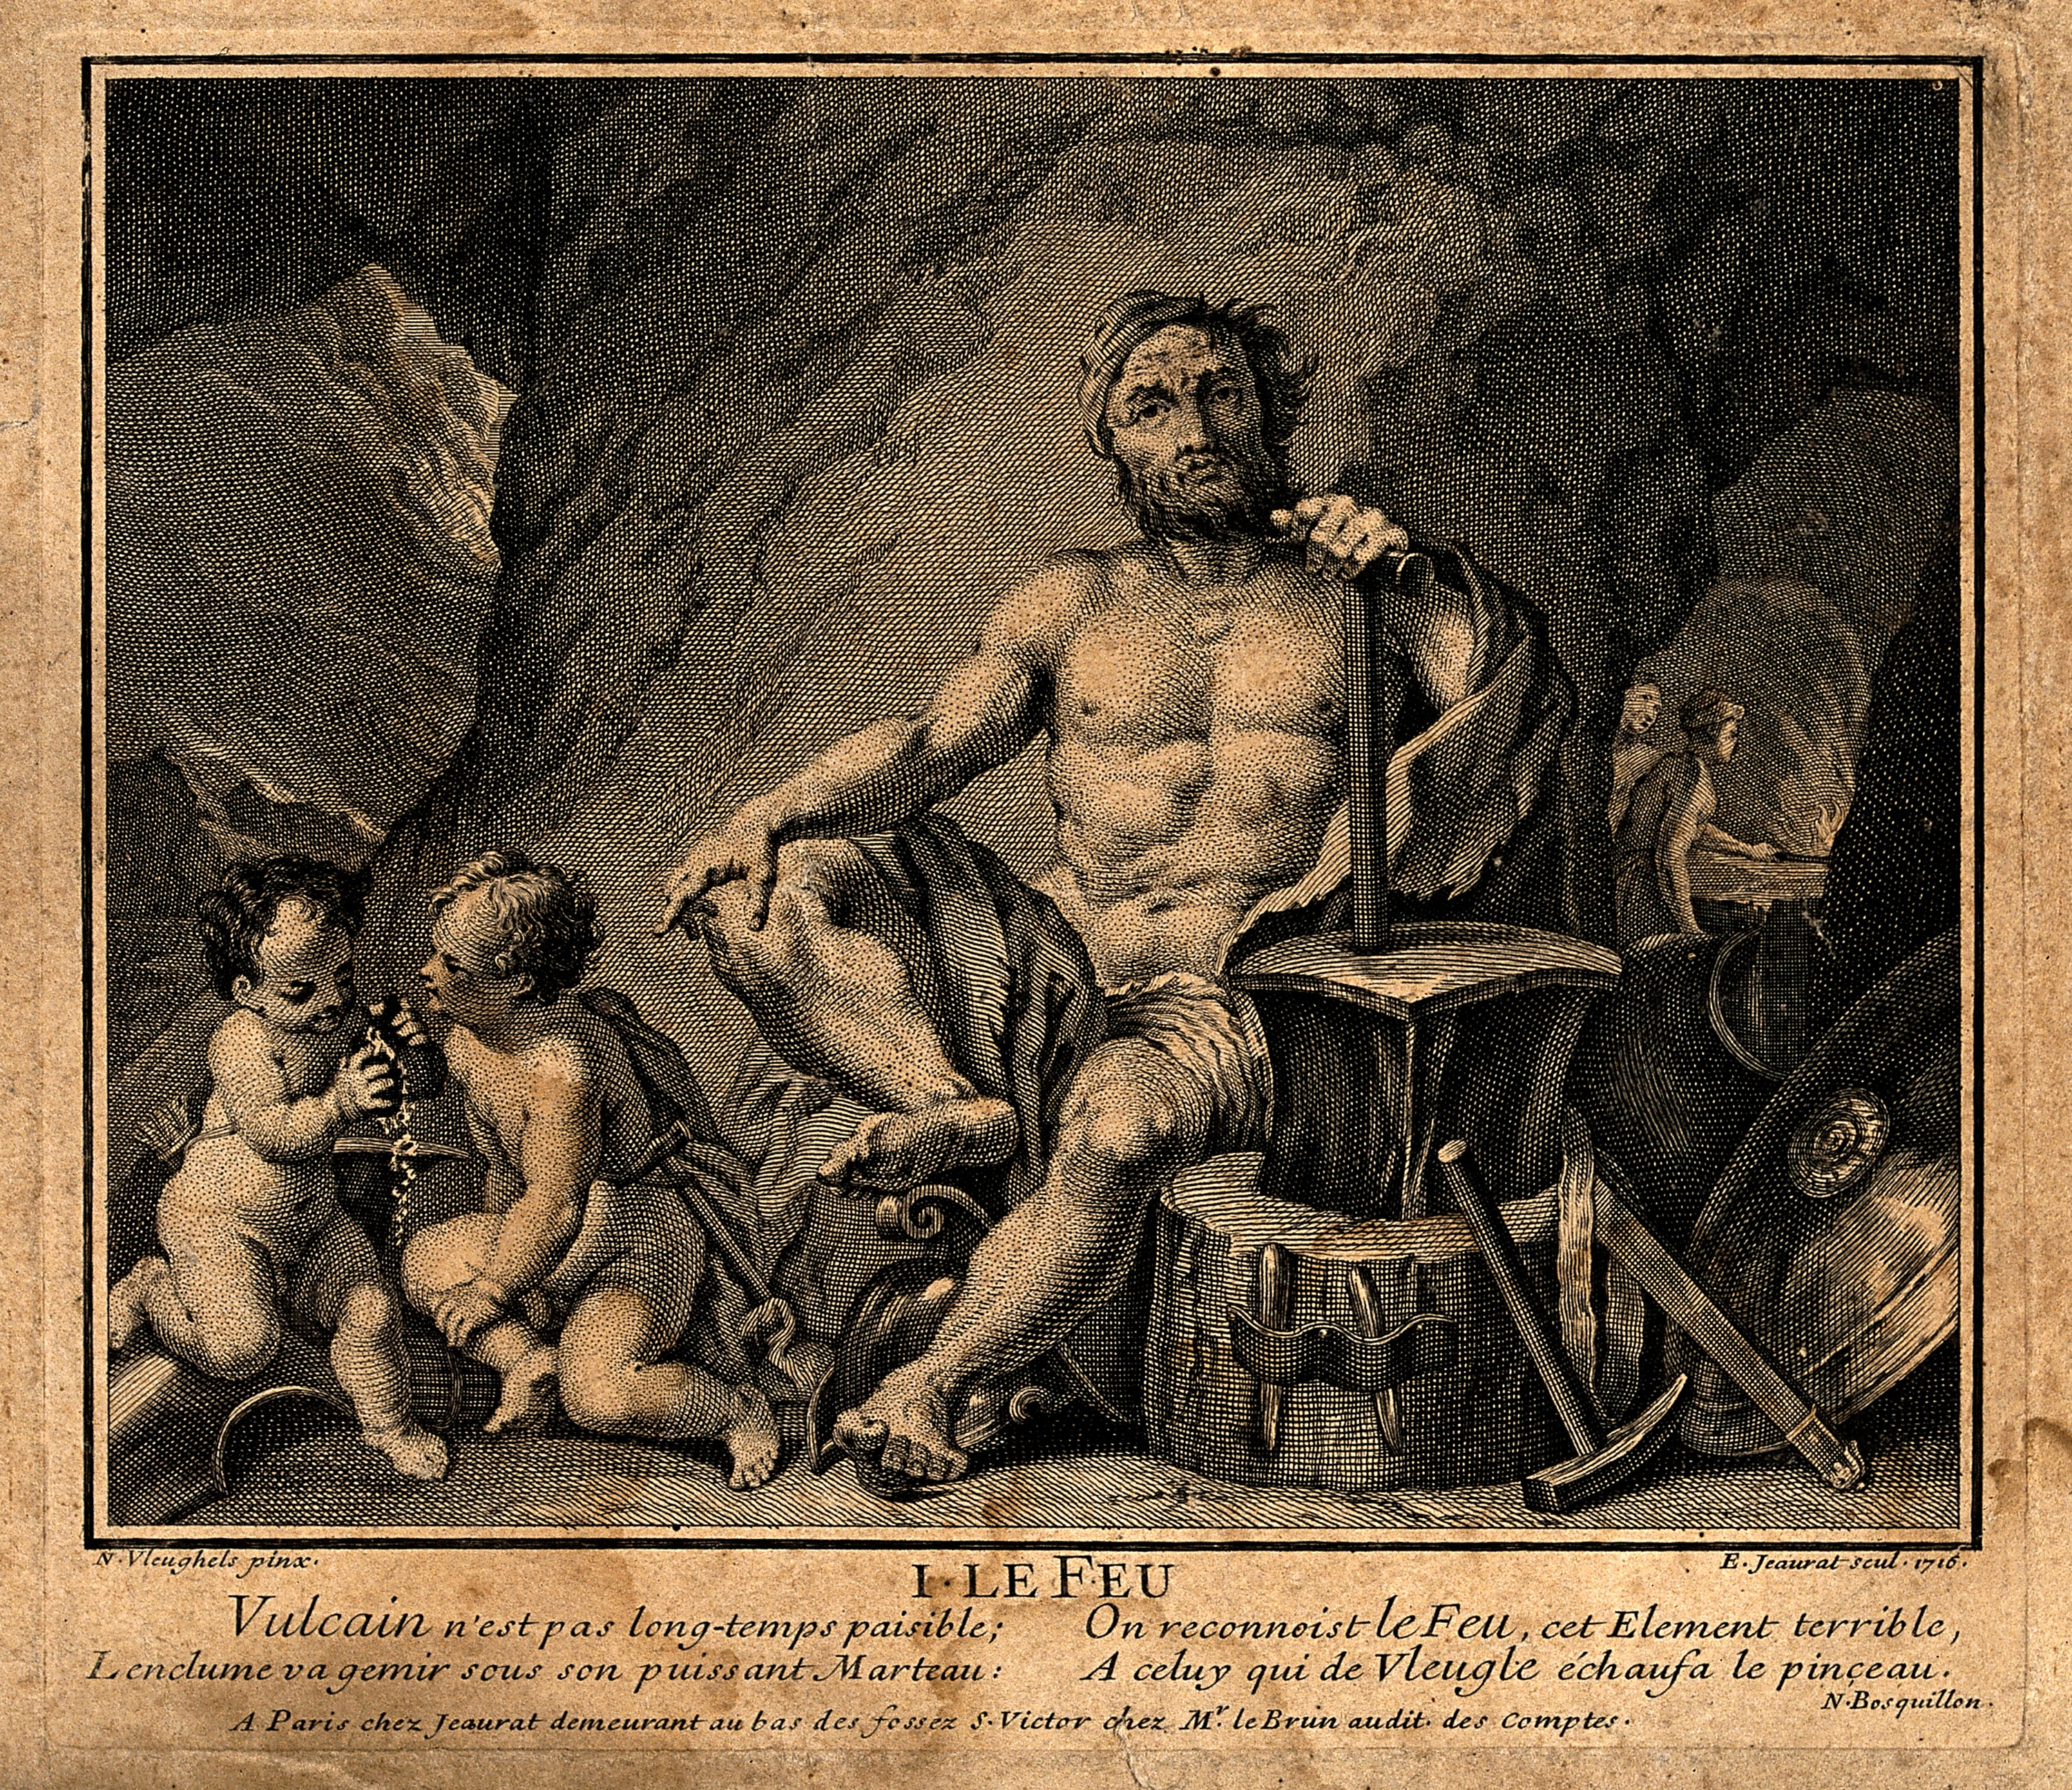 An image of Hephaestus in his forge, one of the most famous of the blacksmith gods, also known as Vulcan to the Romans.